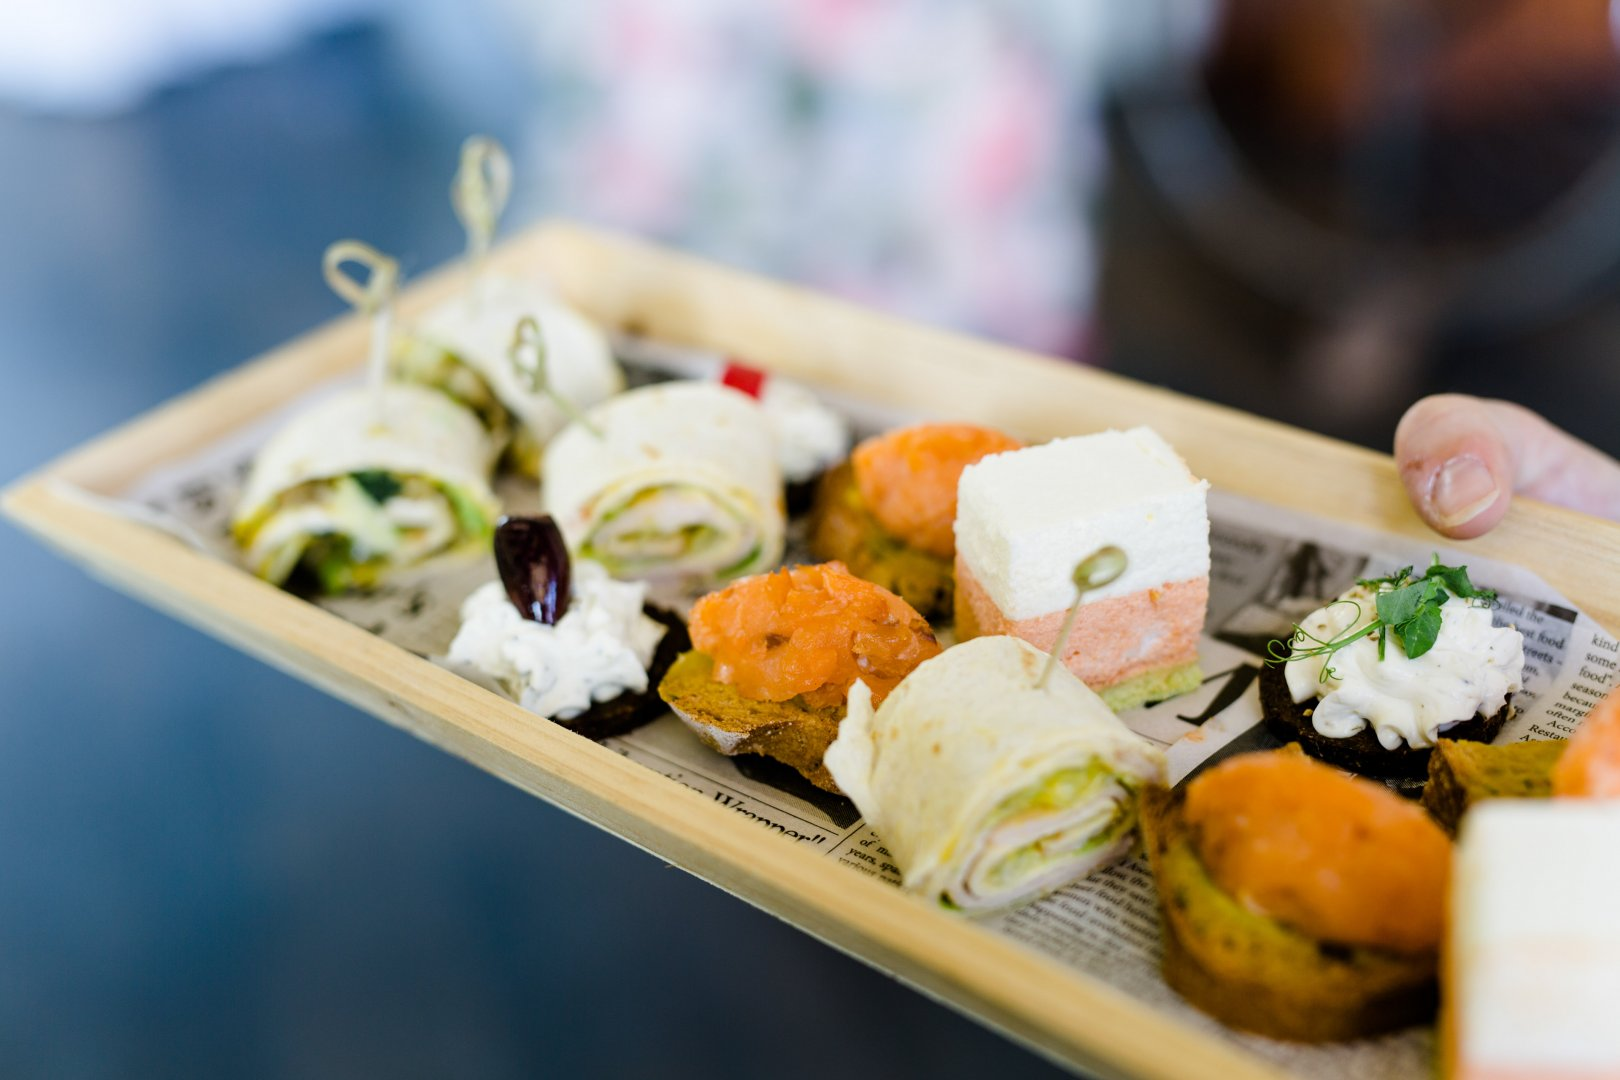 Dish Cuisine Food Meal Comfort food Ingredient Steamed rice Japanese cuisine Gimbap Take-out food À la carte food Side dish Rice ball Lunch California roll Brunch Sushi Recipe Garnish Produce Delicacy appetizer Osechi Finger food Ekiben Bento Hors d'oeuvre Culinary art Tableware Platter